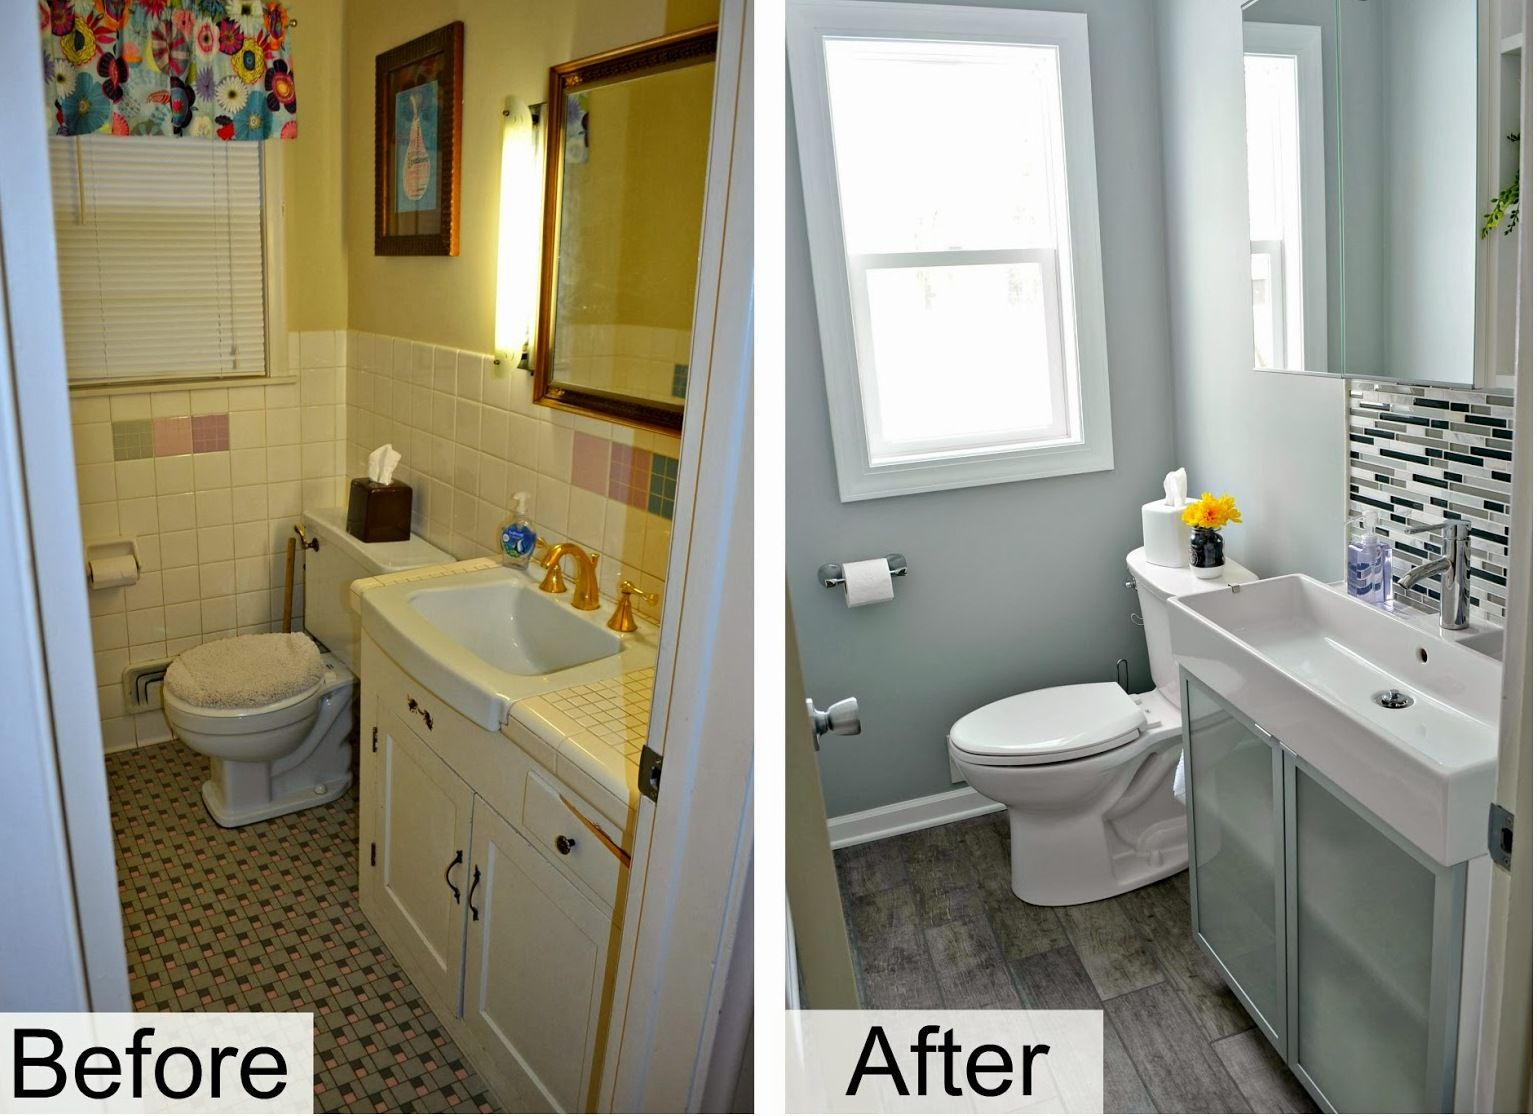 How much does it cost to do a bathroom renovation - Diy Bathroom Remodel Ideas For Average People